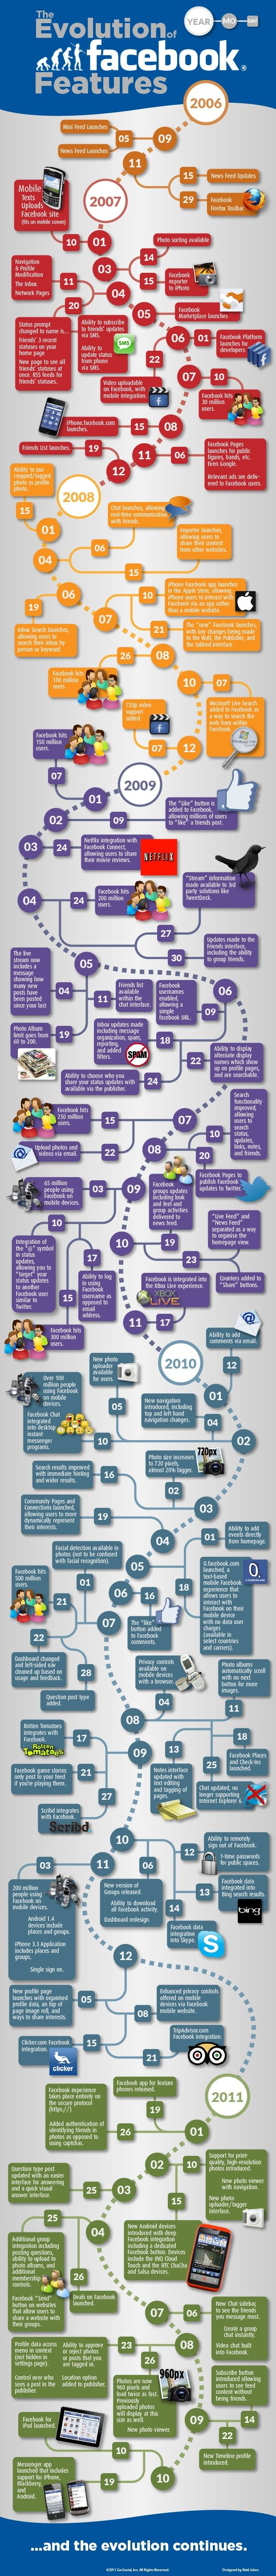 Evolution of Facebook features (made easy!)